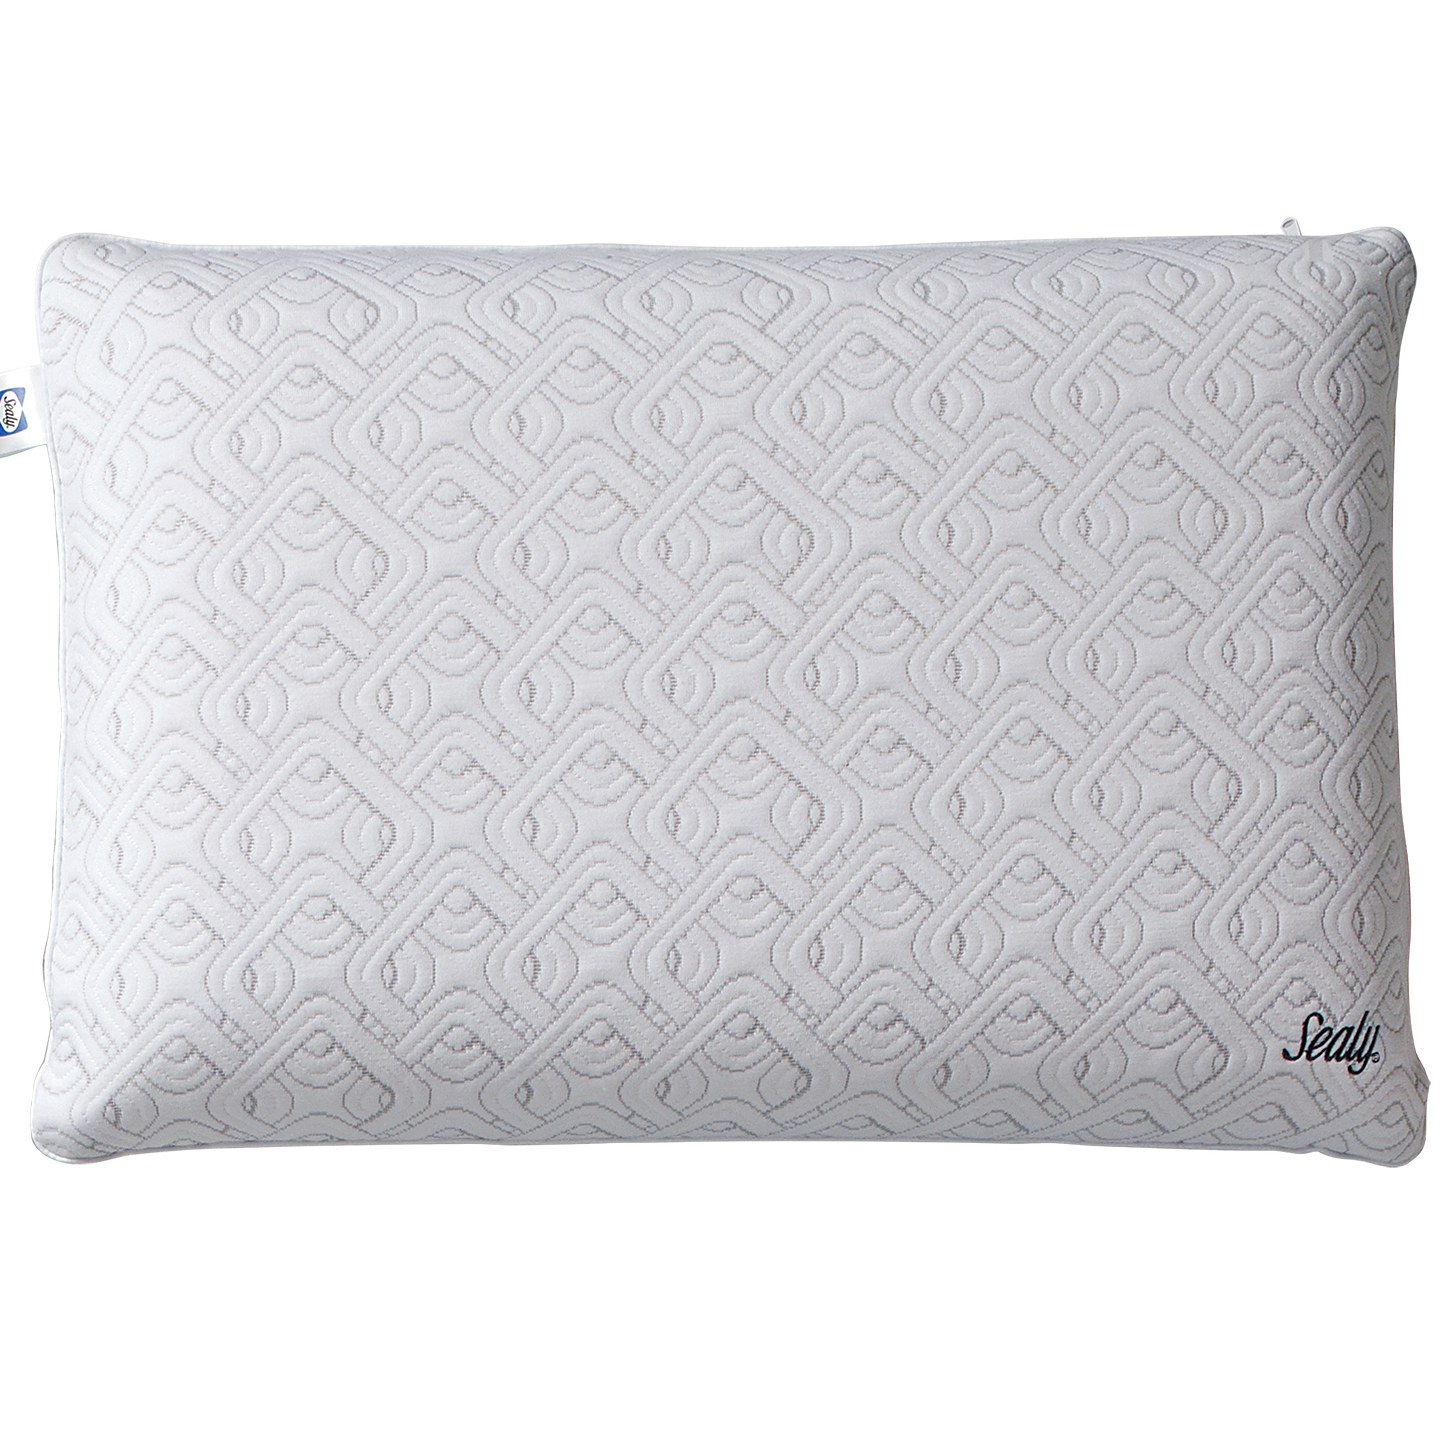 purelux simply cool gel memory foam pillow queen all positions gray